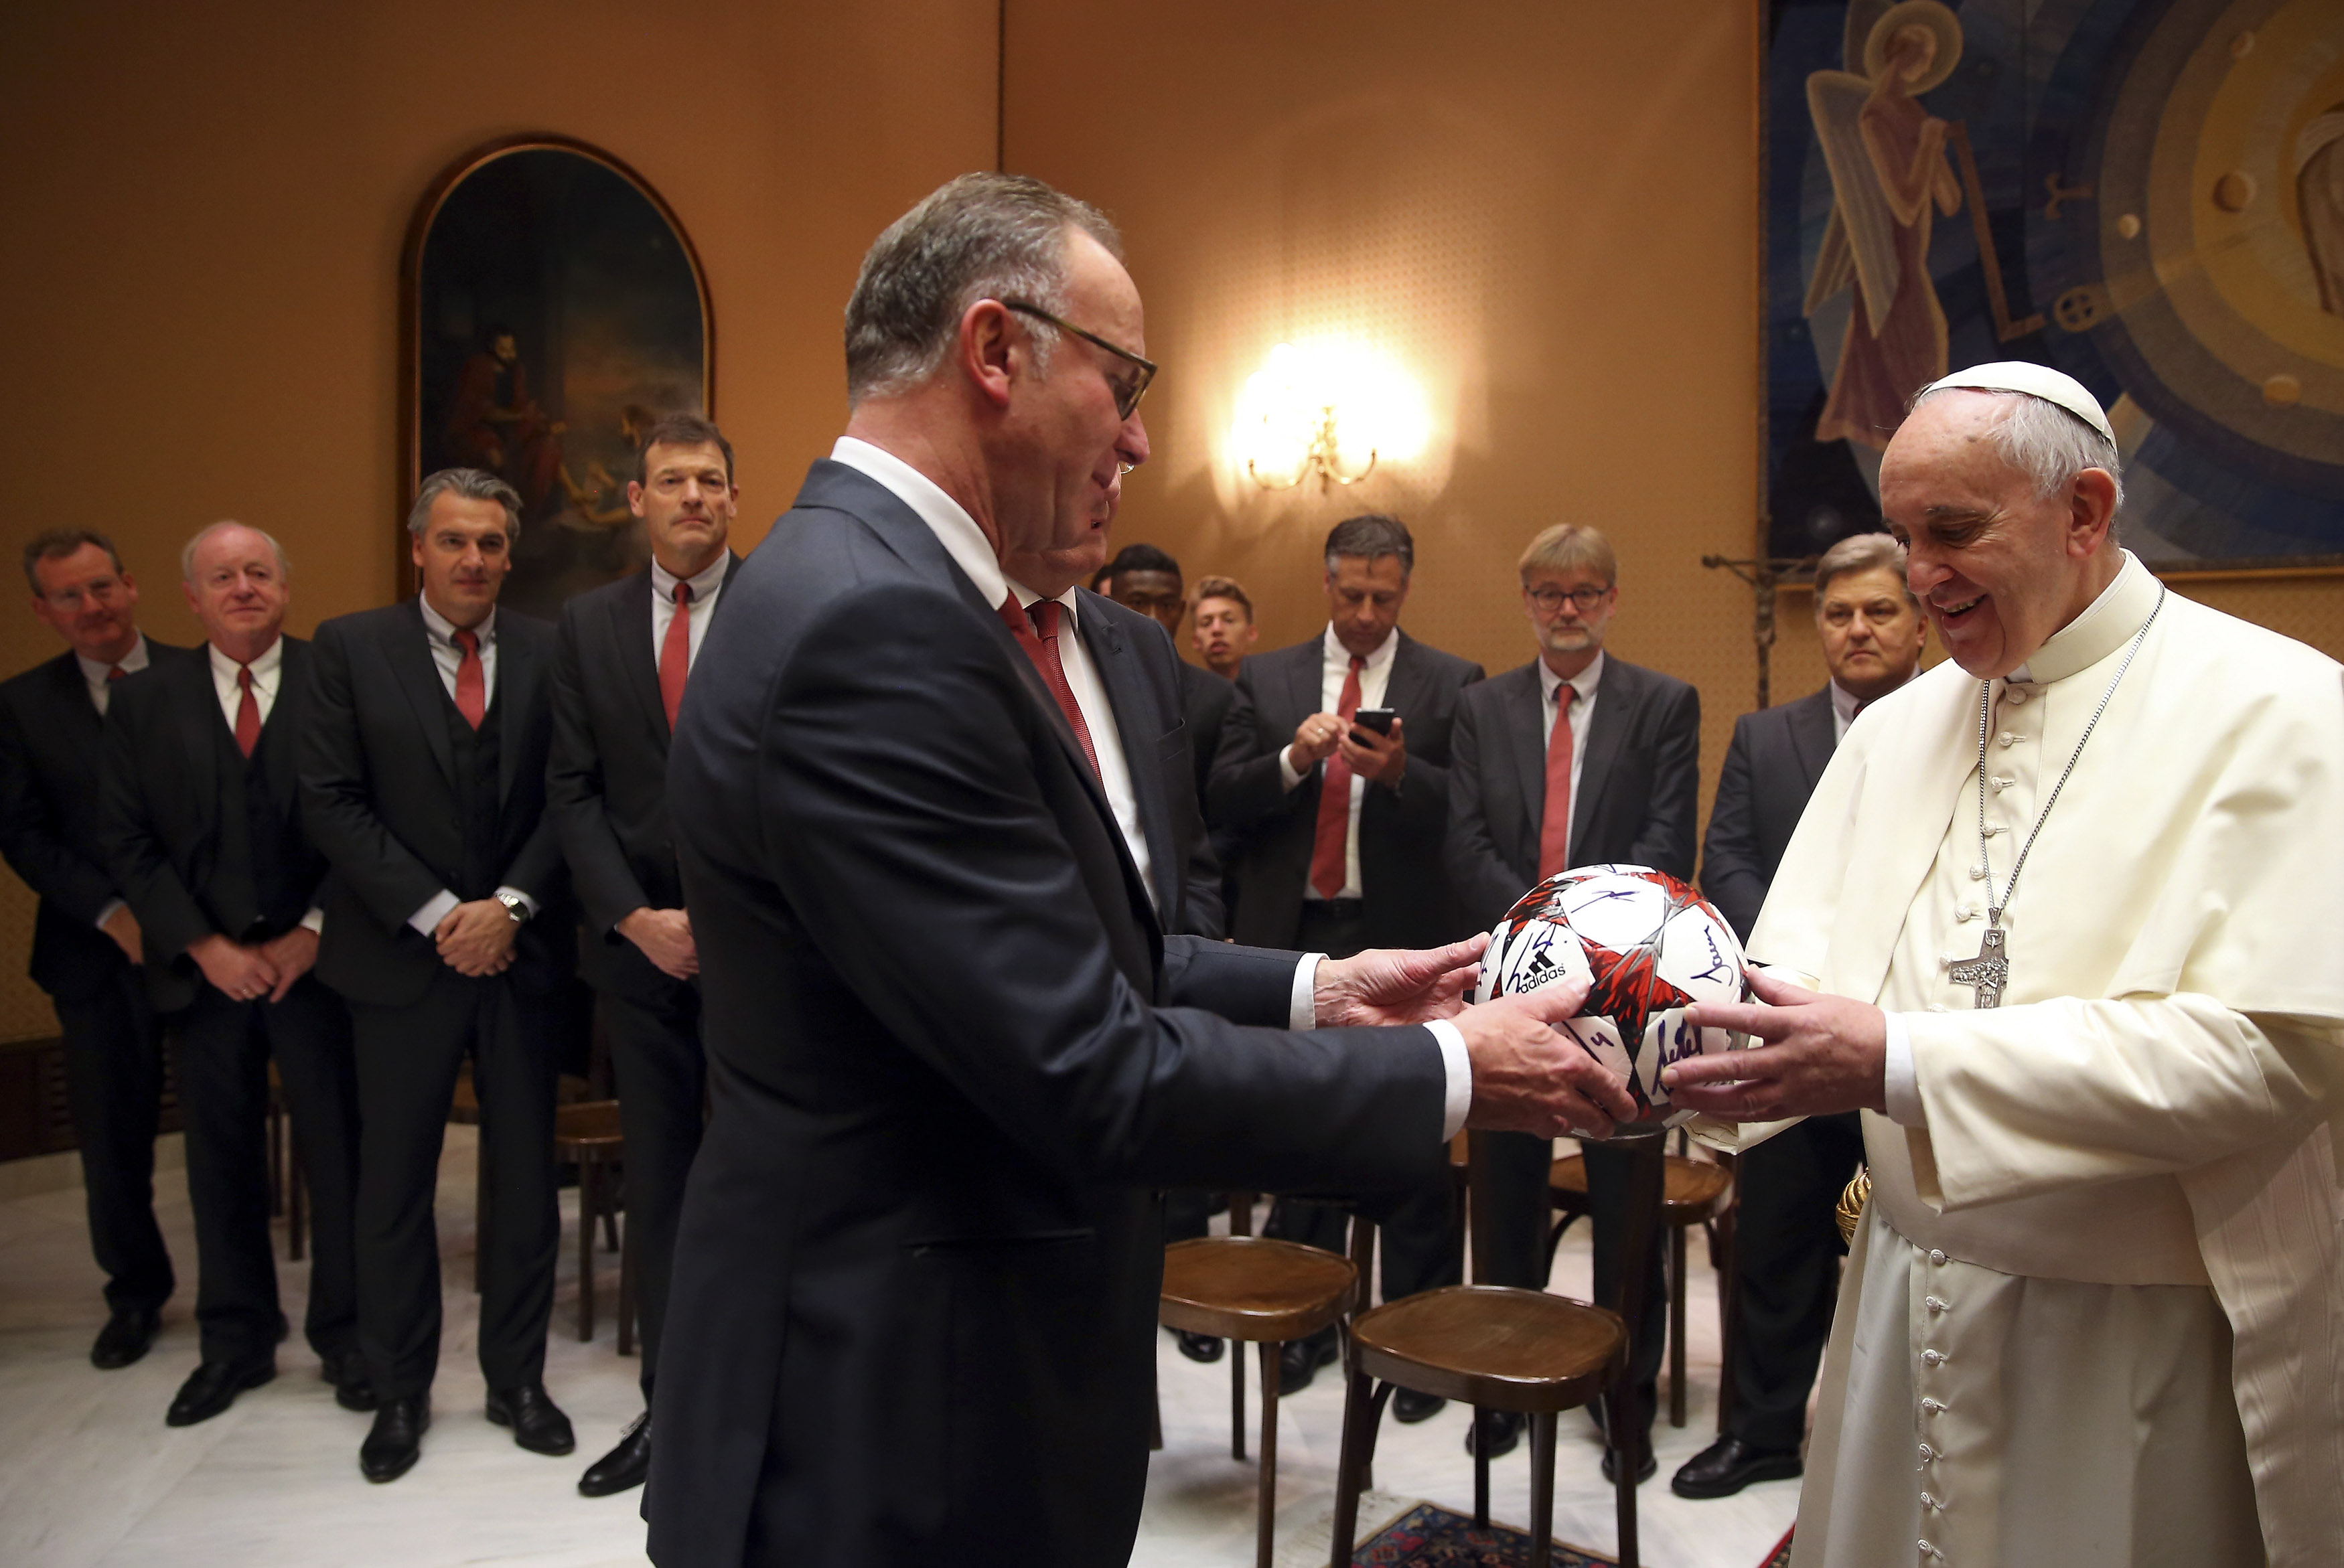 Pope Francis receives an autographed fottball from Bayern Munich's CEO Karlheinz Rummenigge during a private audience with the soccer team at the Palace of the Vatican in Vatican City, October 22, 2014. REUTERS/Alexander Hassenstein/Pool (VATICAN - Tags: SPORT SOCCER RELIGION) - RTR4B4TZ